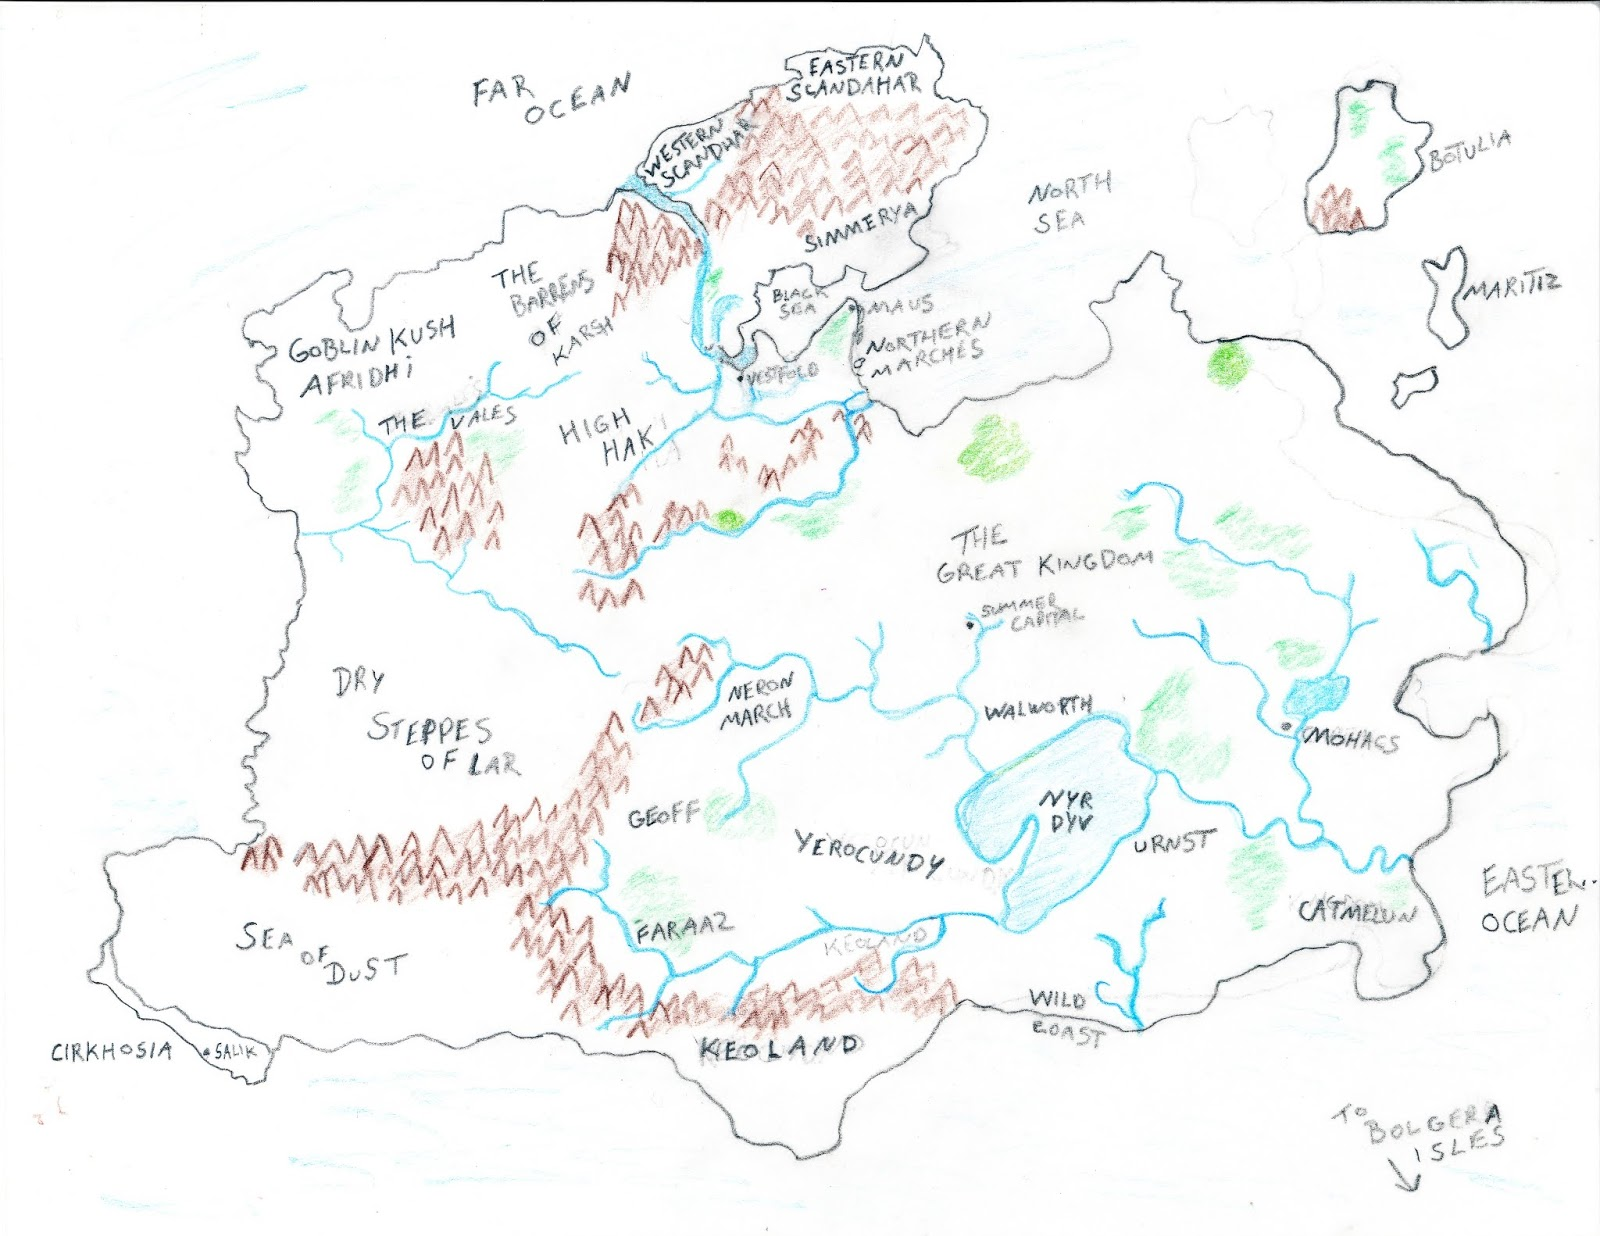 Map Of Eastern Canada, Anyway Below Is My Somewhat Crude Hey Im No Raphael But Eminently Functional World Map Of Blackmoor Feel Free To Use Or Improve As You Please, Map Of Eastern Canada